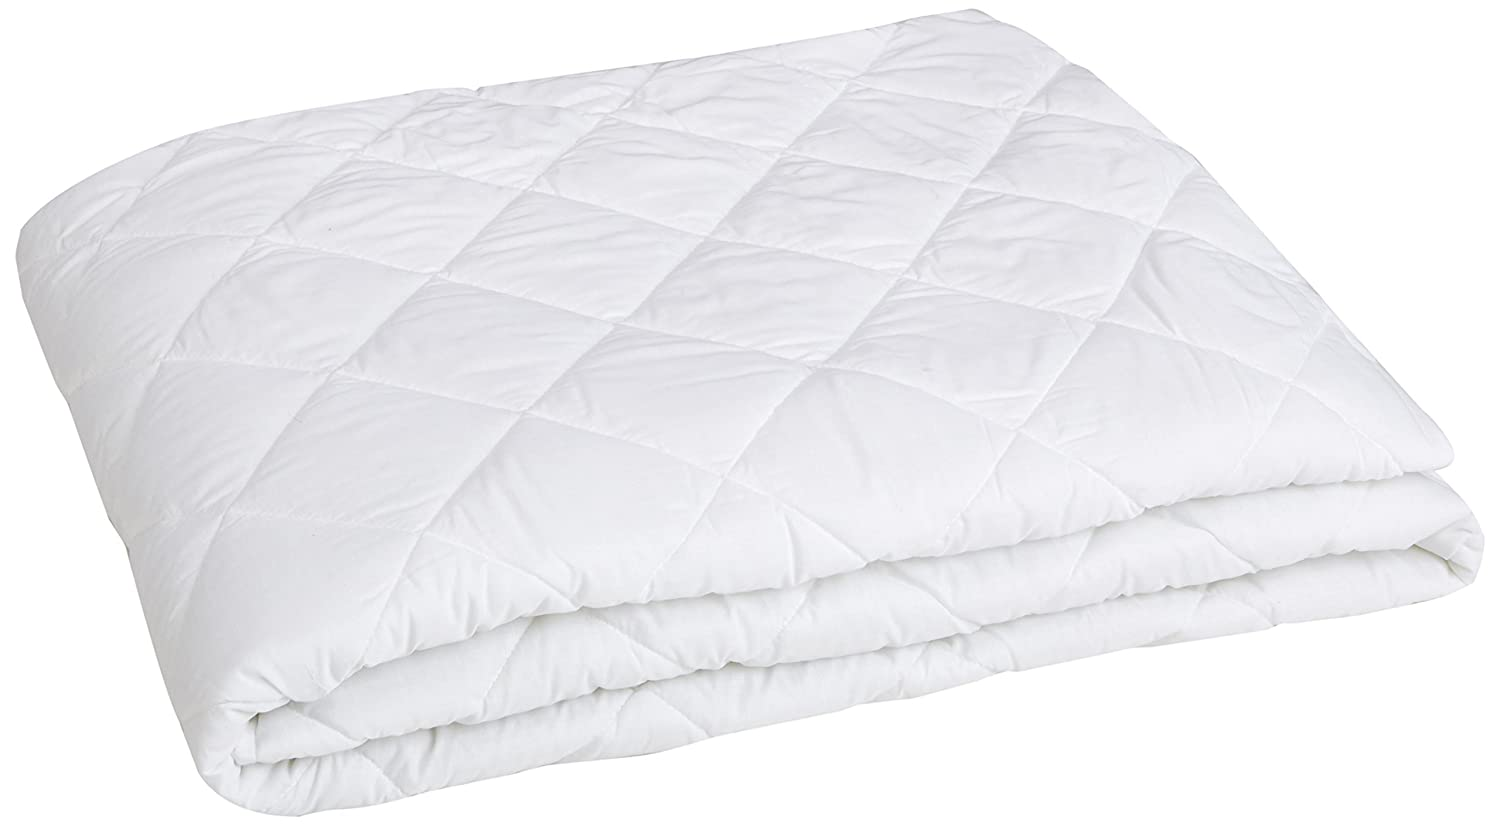 "AmazonBasics Hypoallergenic Quilted Mattress Topper, 18"" Deep, Queen"